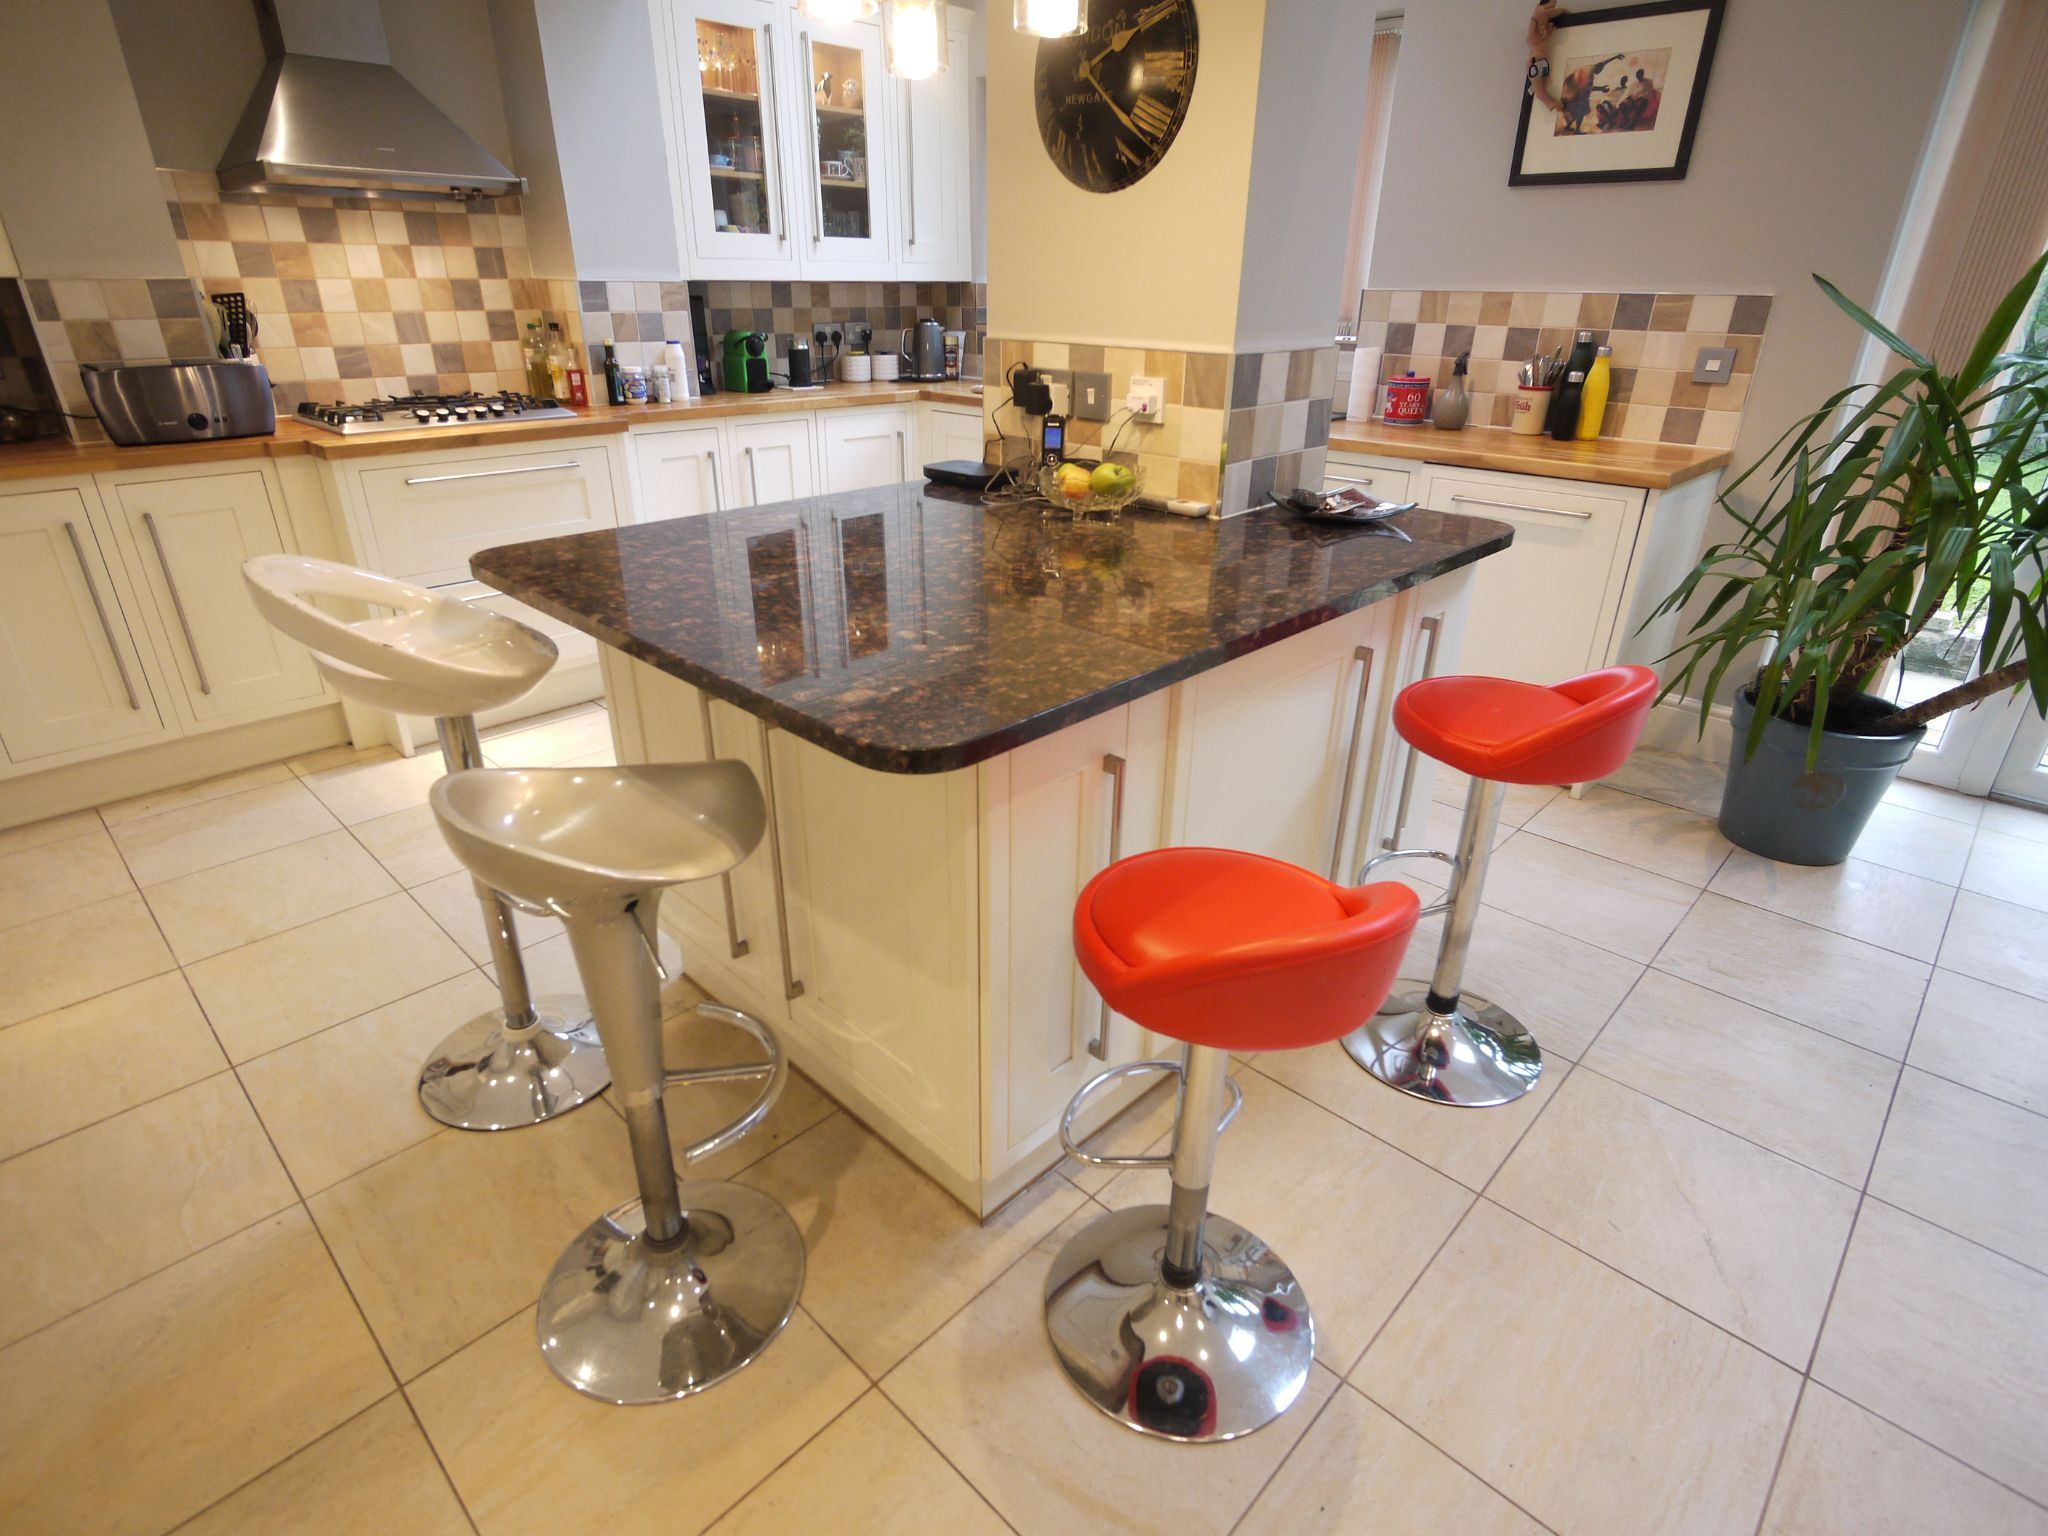 6 bedroom detached house SSTC in Halifax - dining kit 2.